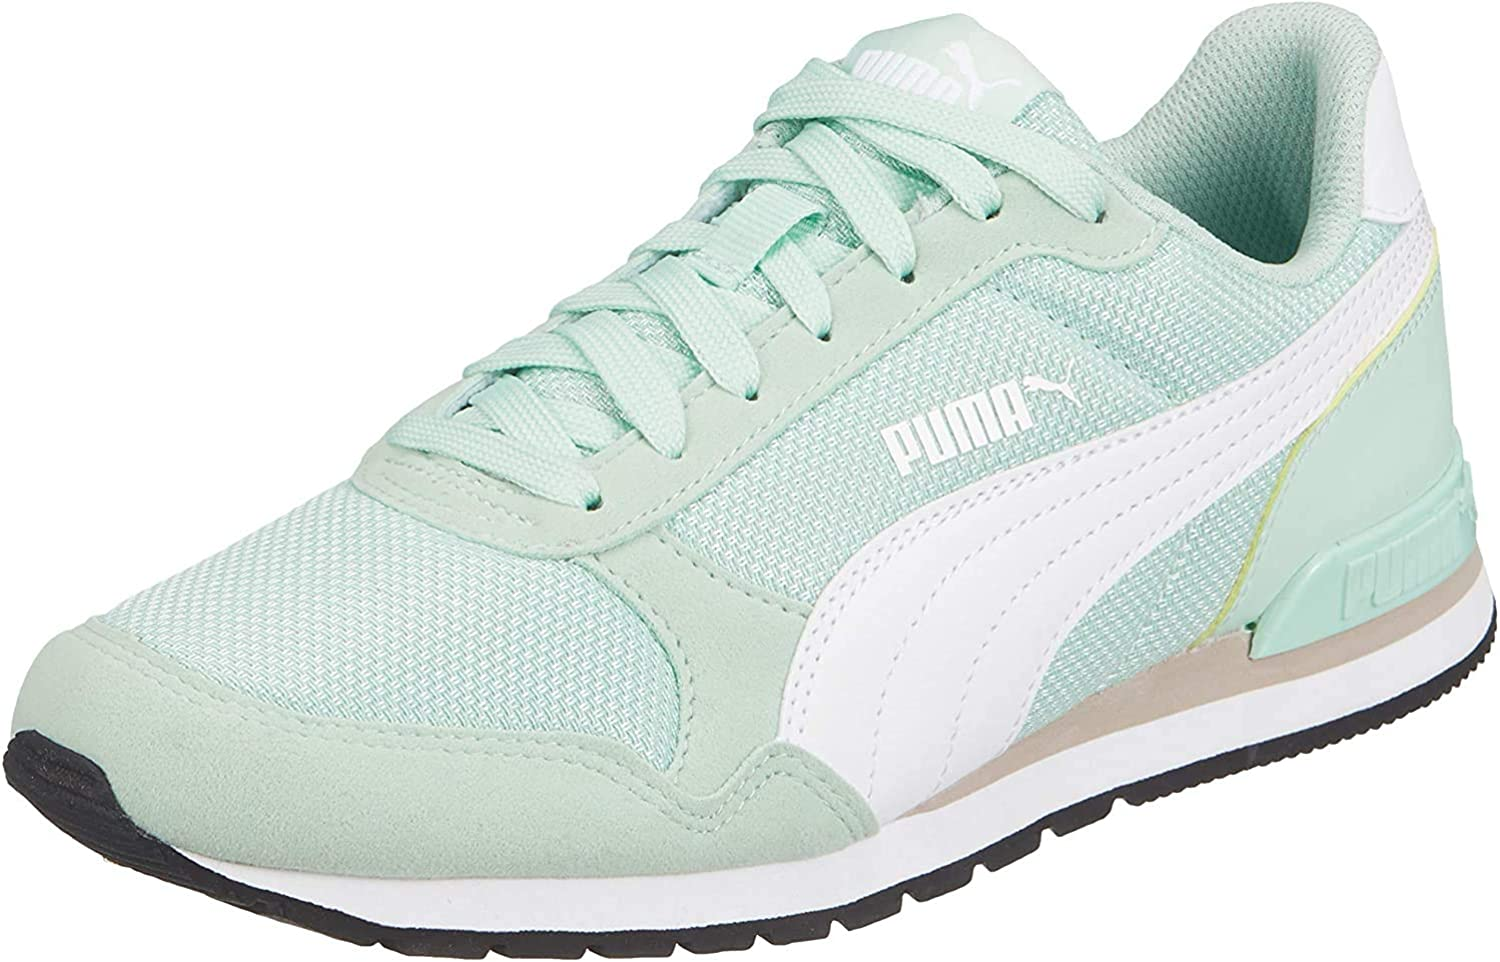 PUMA ST Runner V2 Mesh, Zapatillas Unisex Adulto: Amazon.es ...